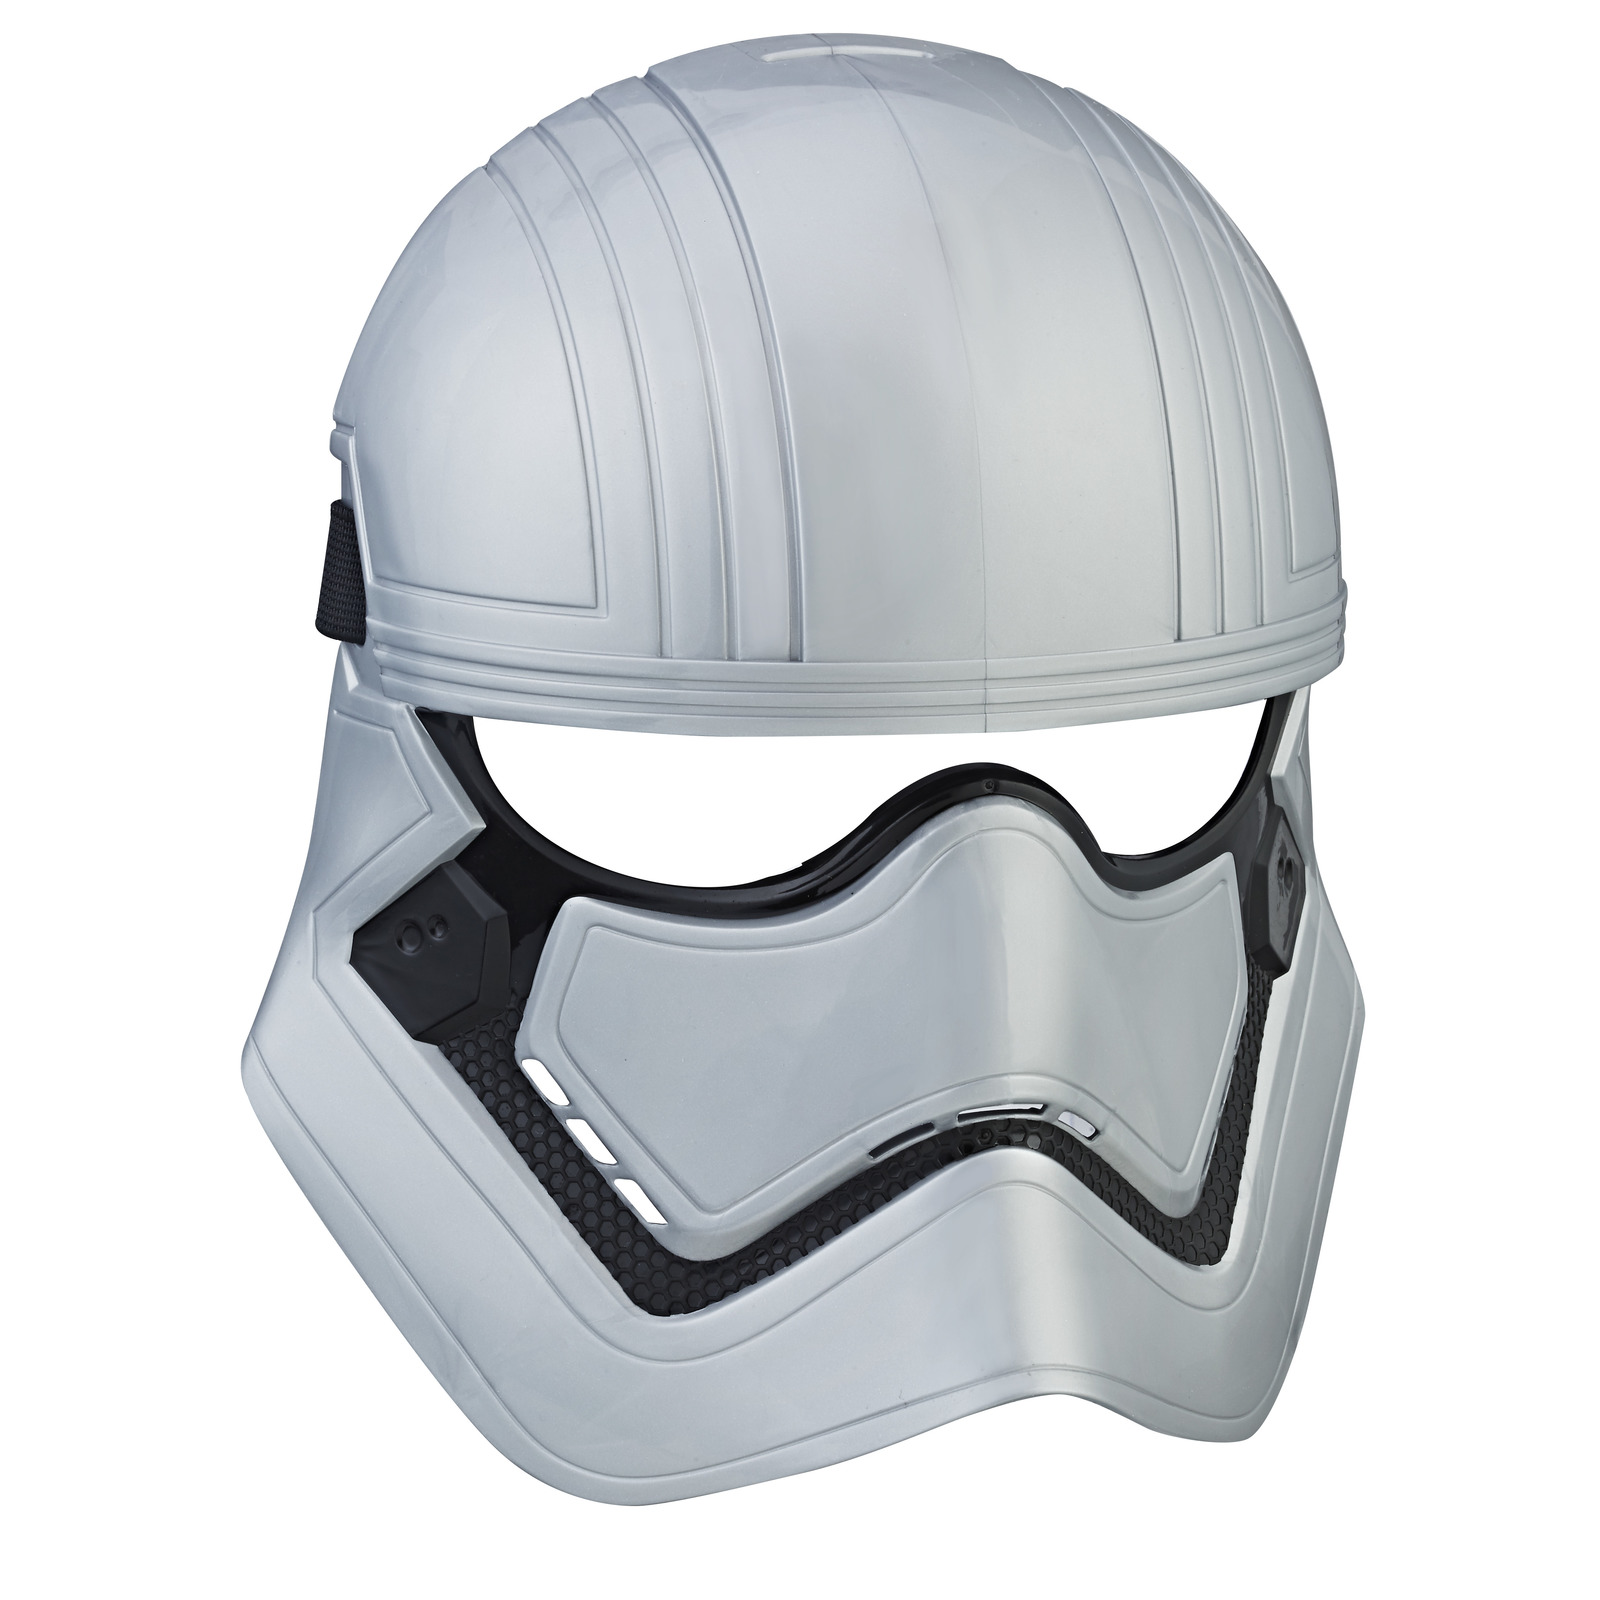 Star Wars: The Last Jedi Mask - Captain Phasma image